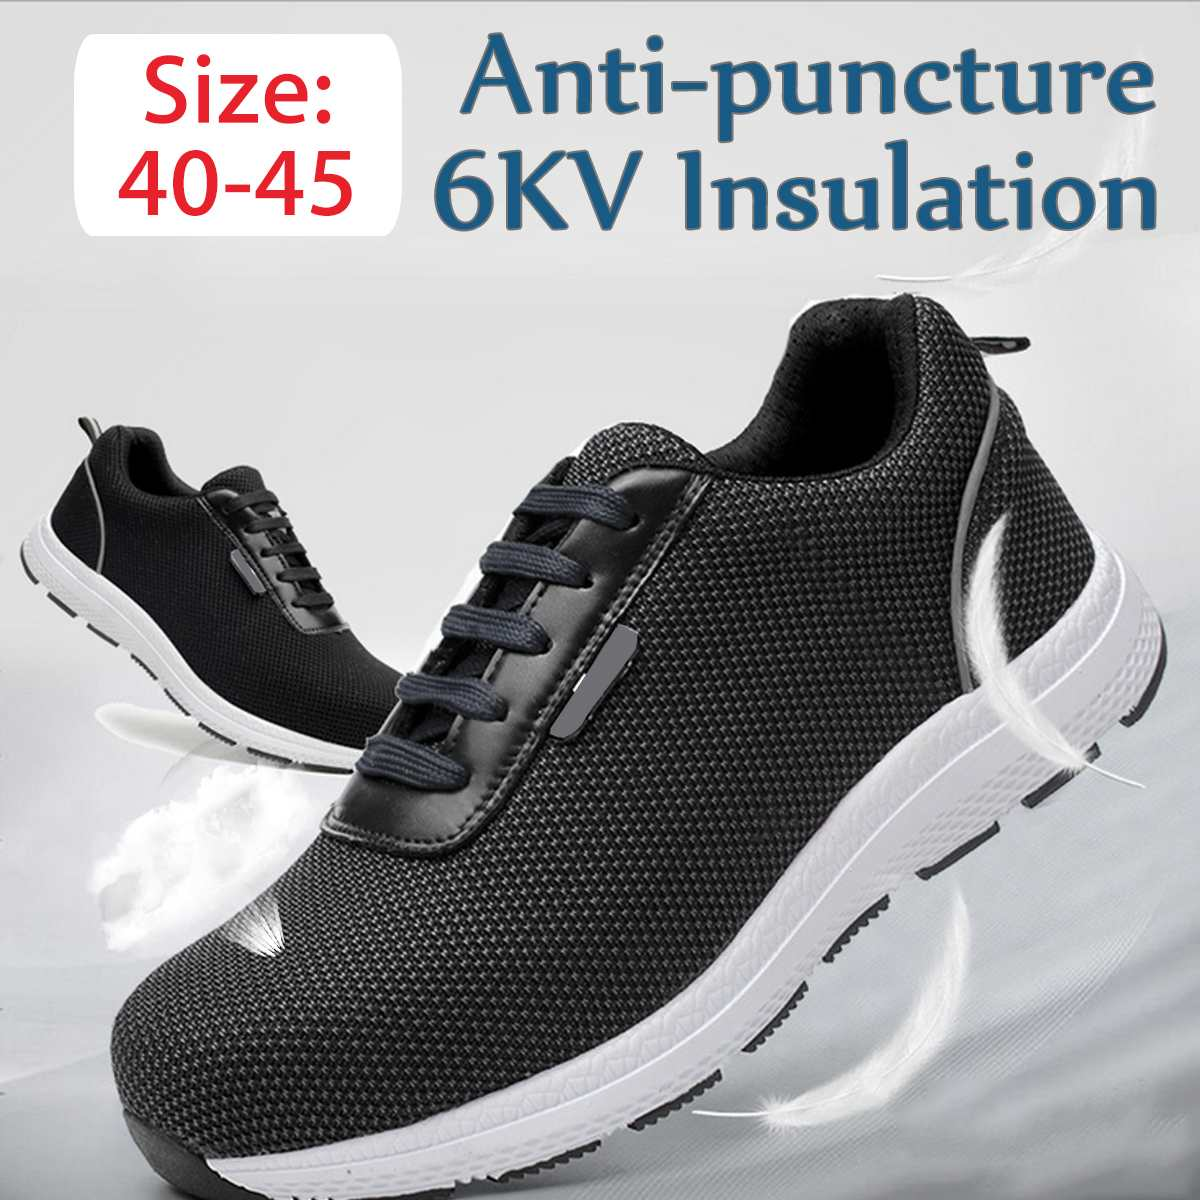 Men Lightweight Steel Toe Cap Reflective Work Safety Shoes 6KV Insulation Anti-puncture Breathable Construction Safety Boots